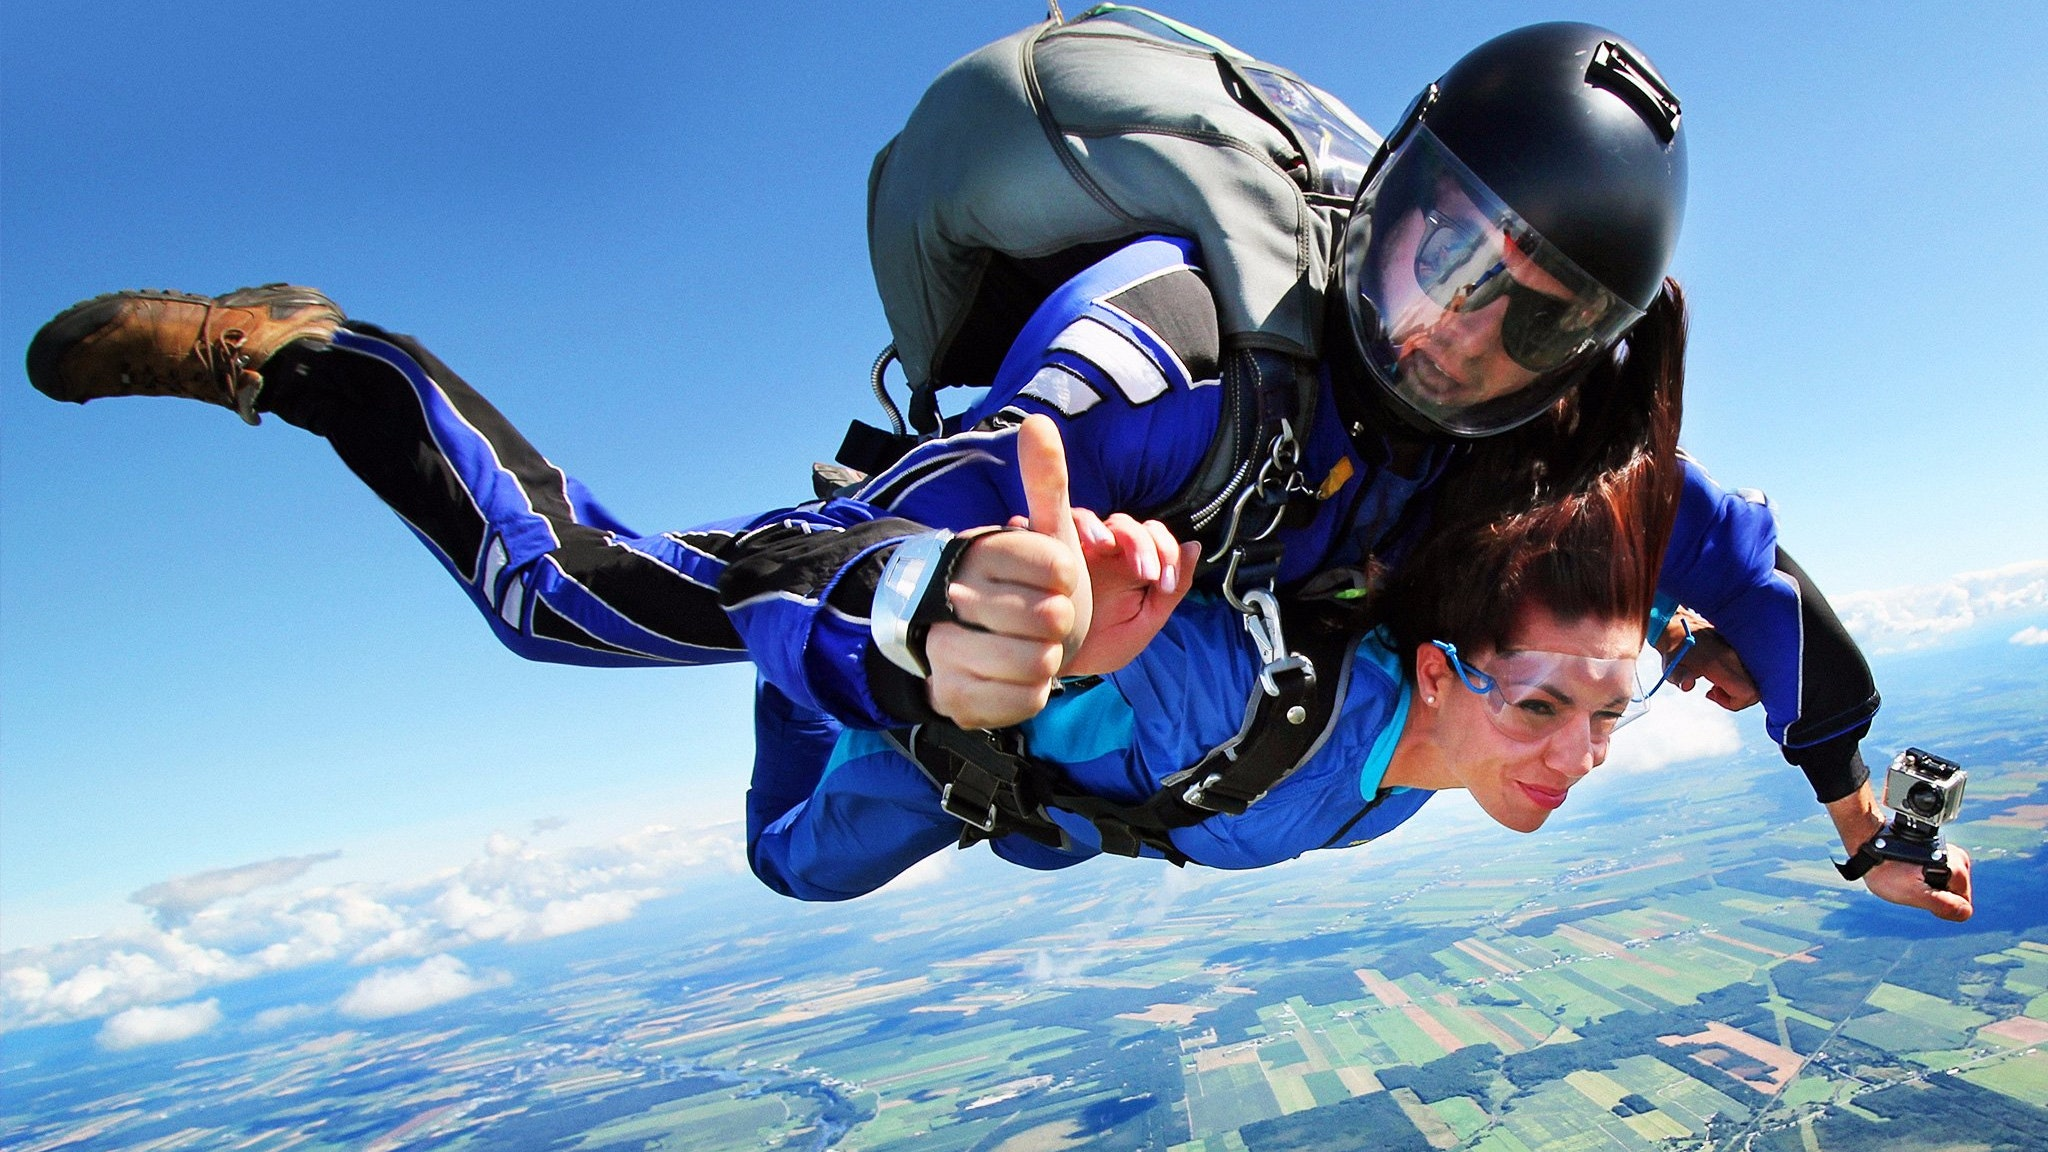 Skydiving over the Great Ocean Road